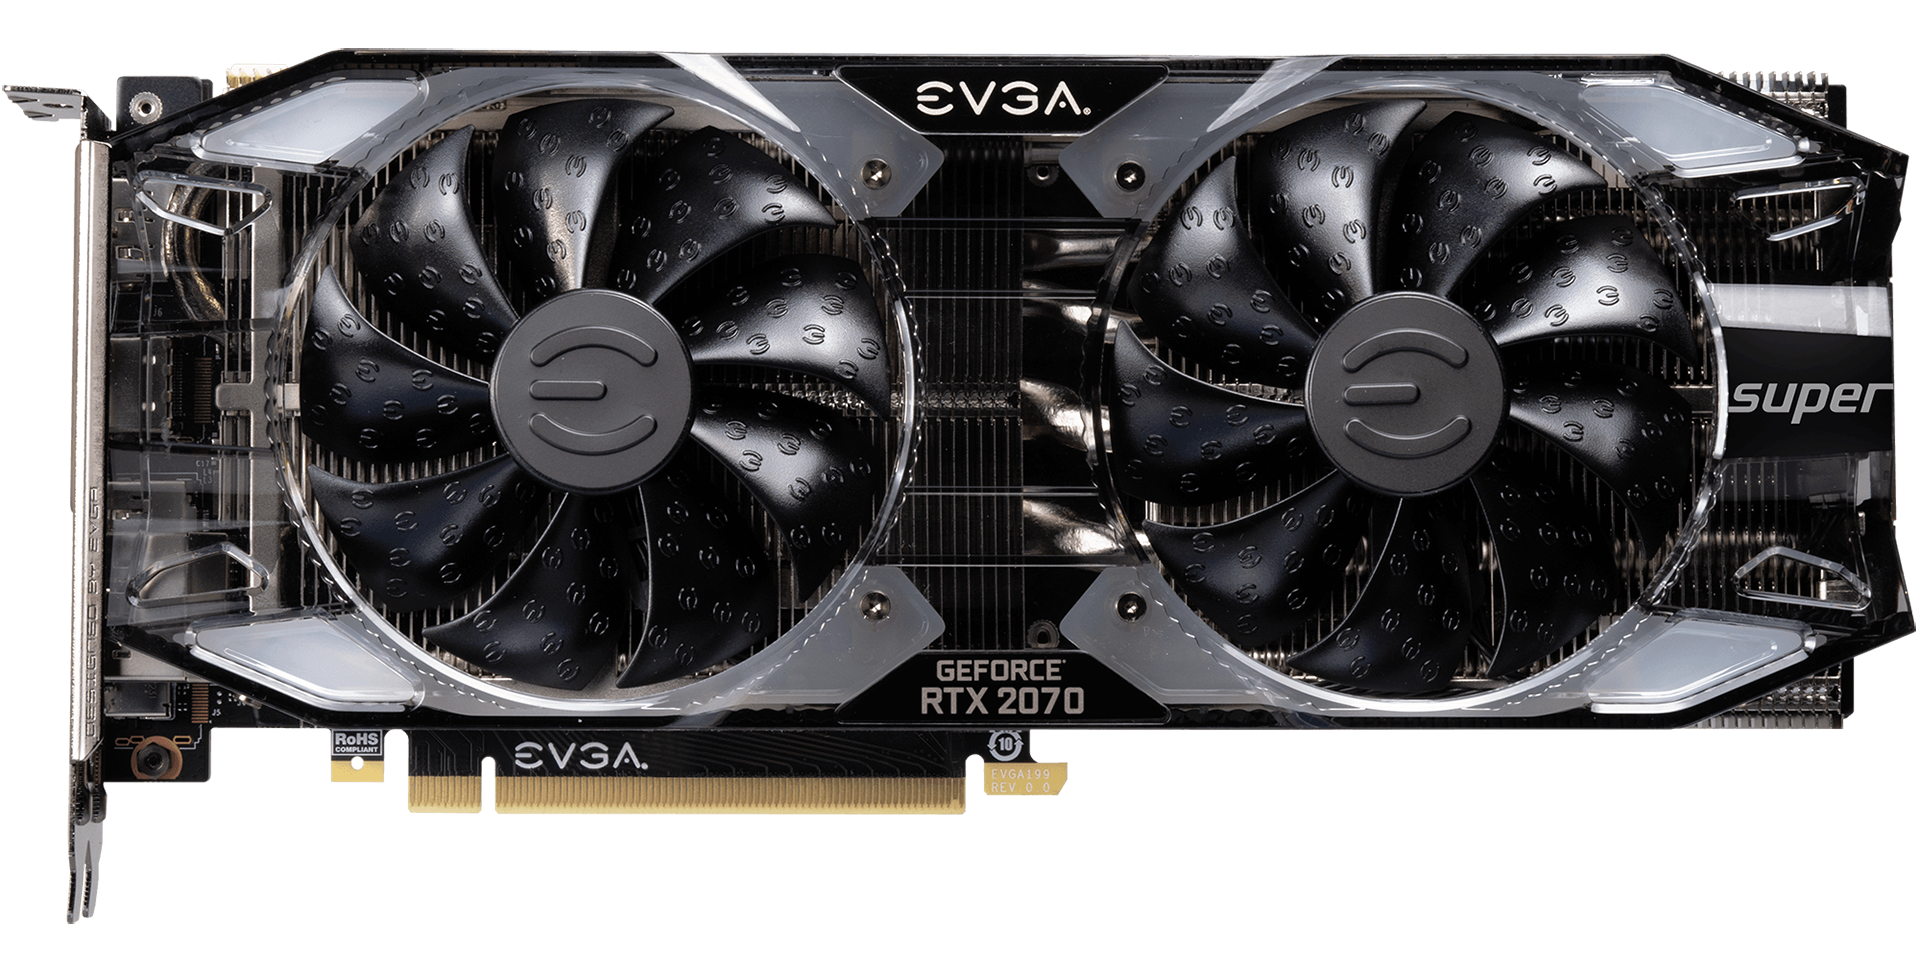 Review: EVGA GeForce RTX 2070 Super XC Gaming - Graphics